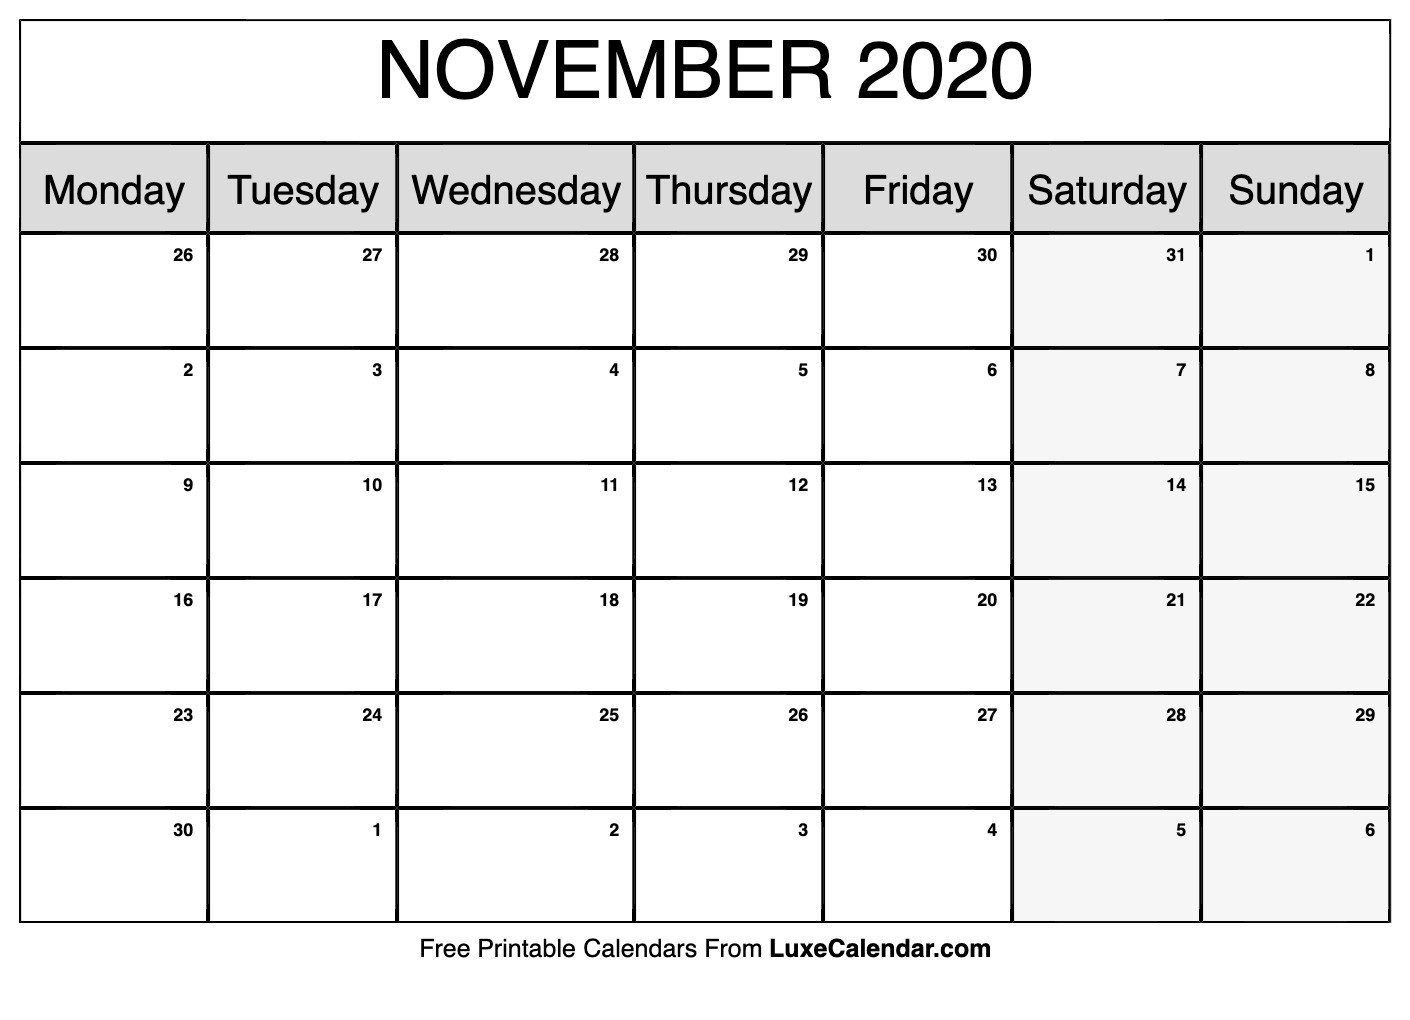 Blank November 2020 Calendar Printable - Luxe Calendar-Printable 2020 Monthly Calendar Monday Start